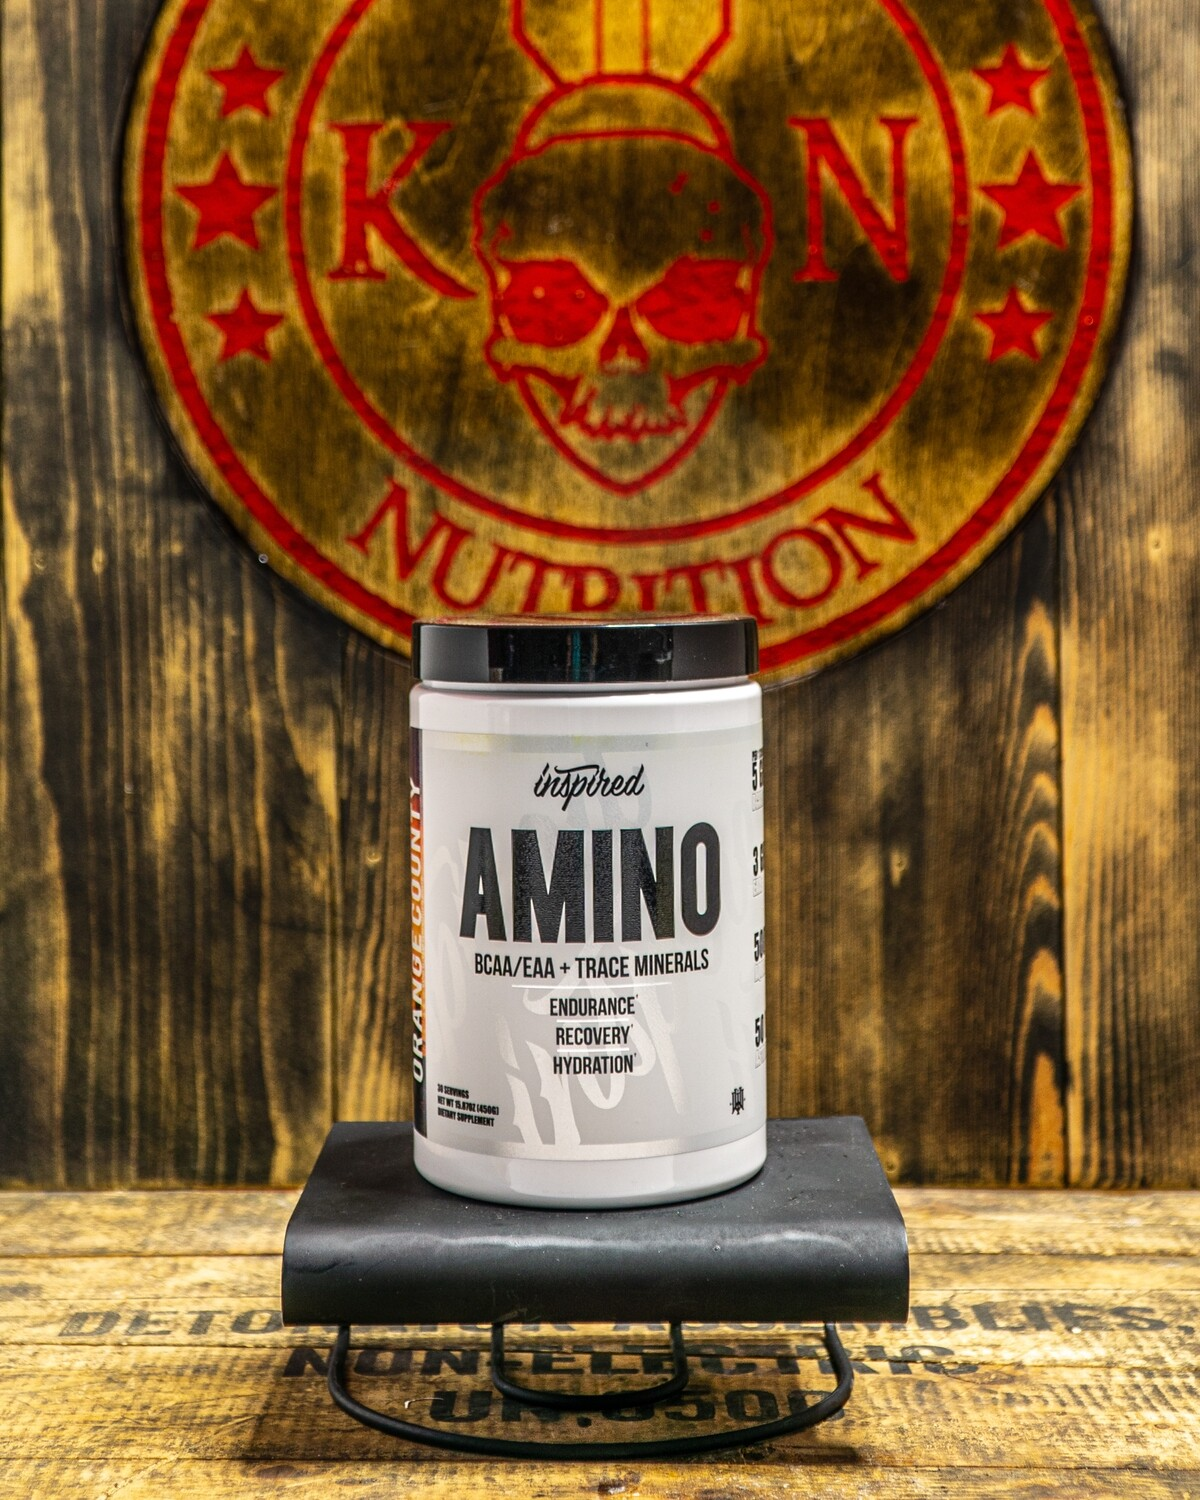 Inspired, Amino Bcaa/Eaa, Concord Candy, 30 Servings